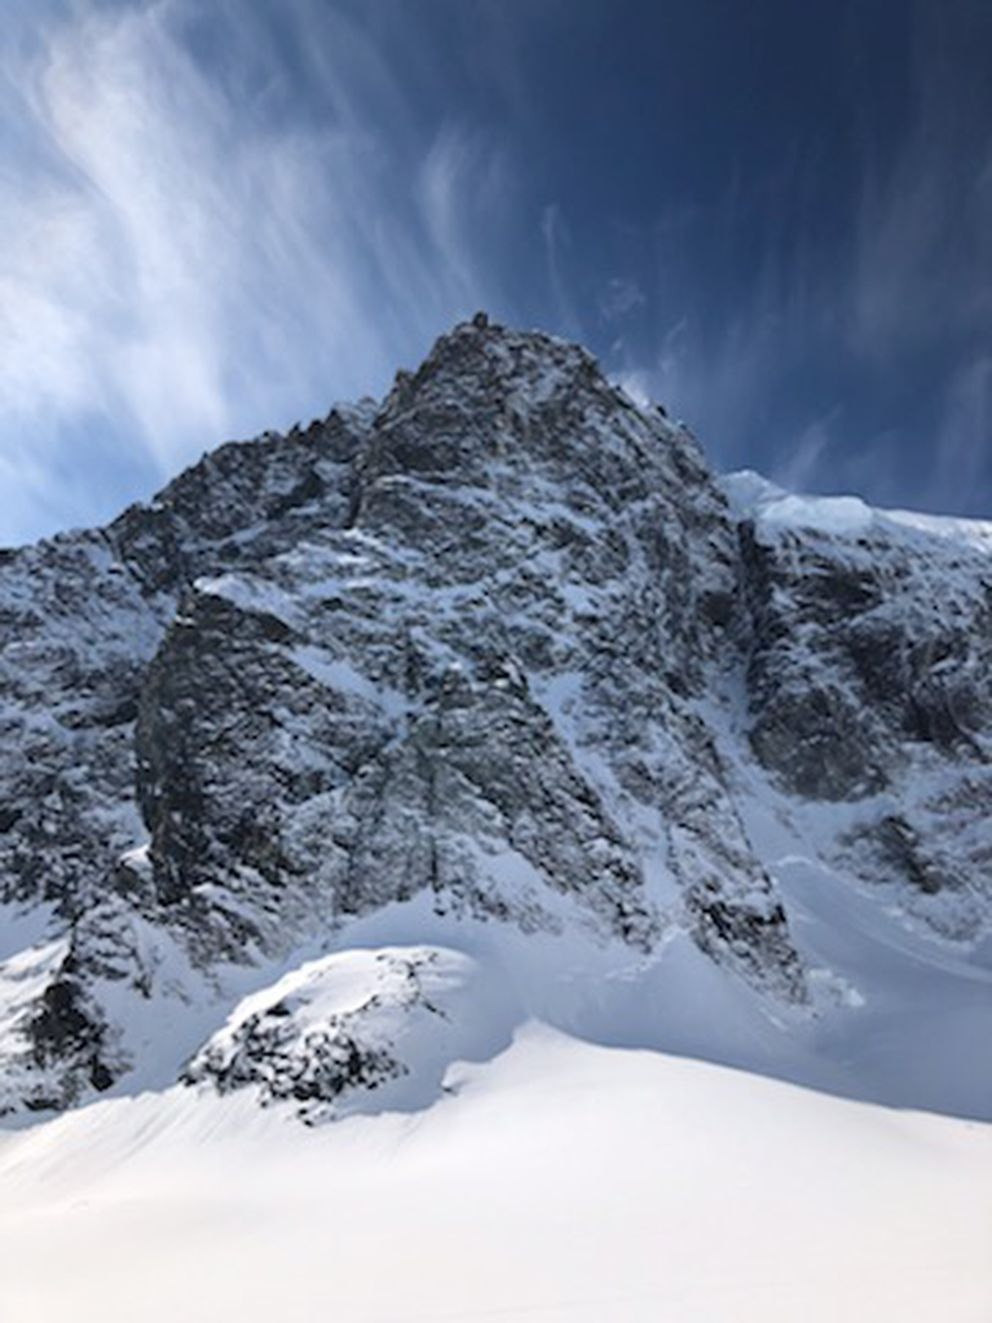 There has been no known successful climb of Mount Neacola from the north face. (Photo by Ryan Driscoll)